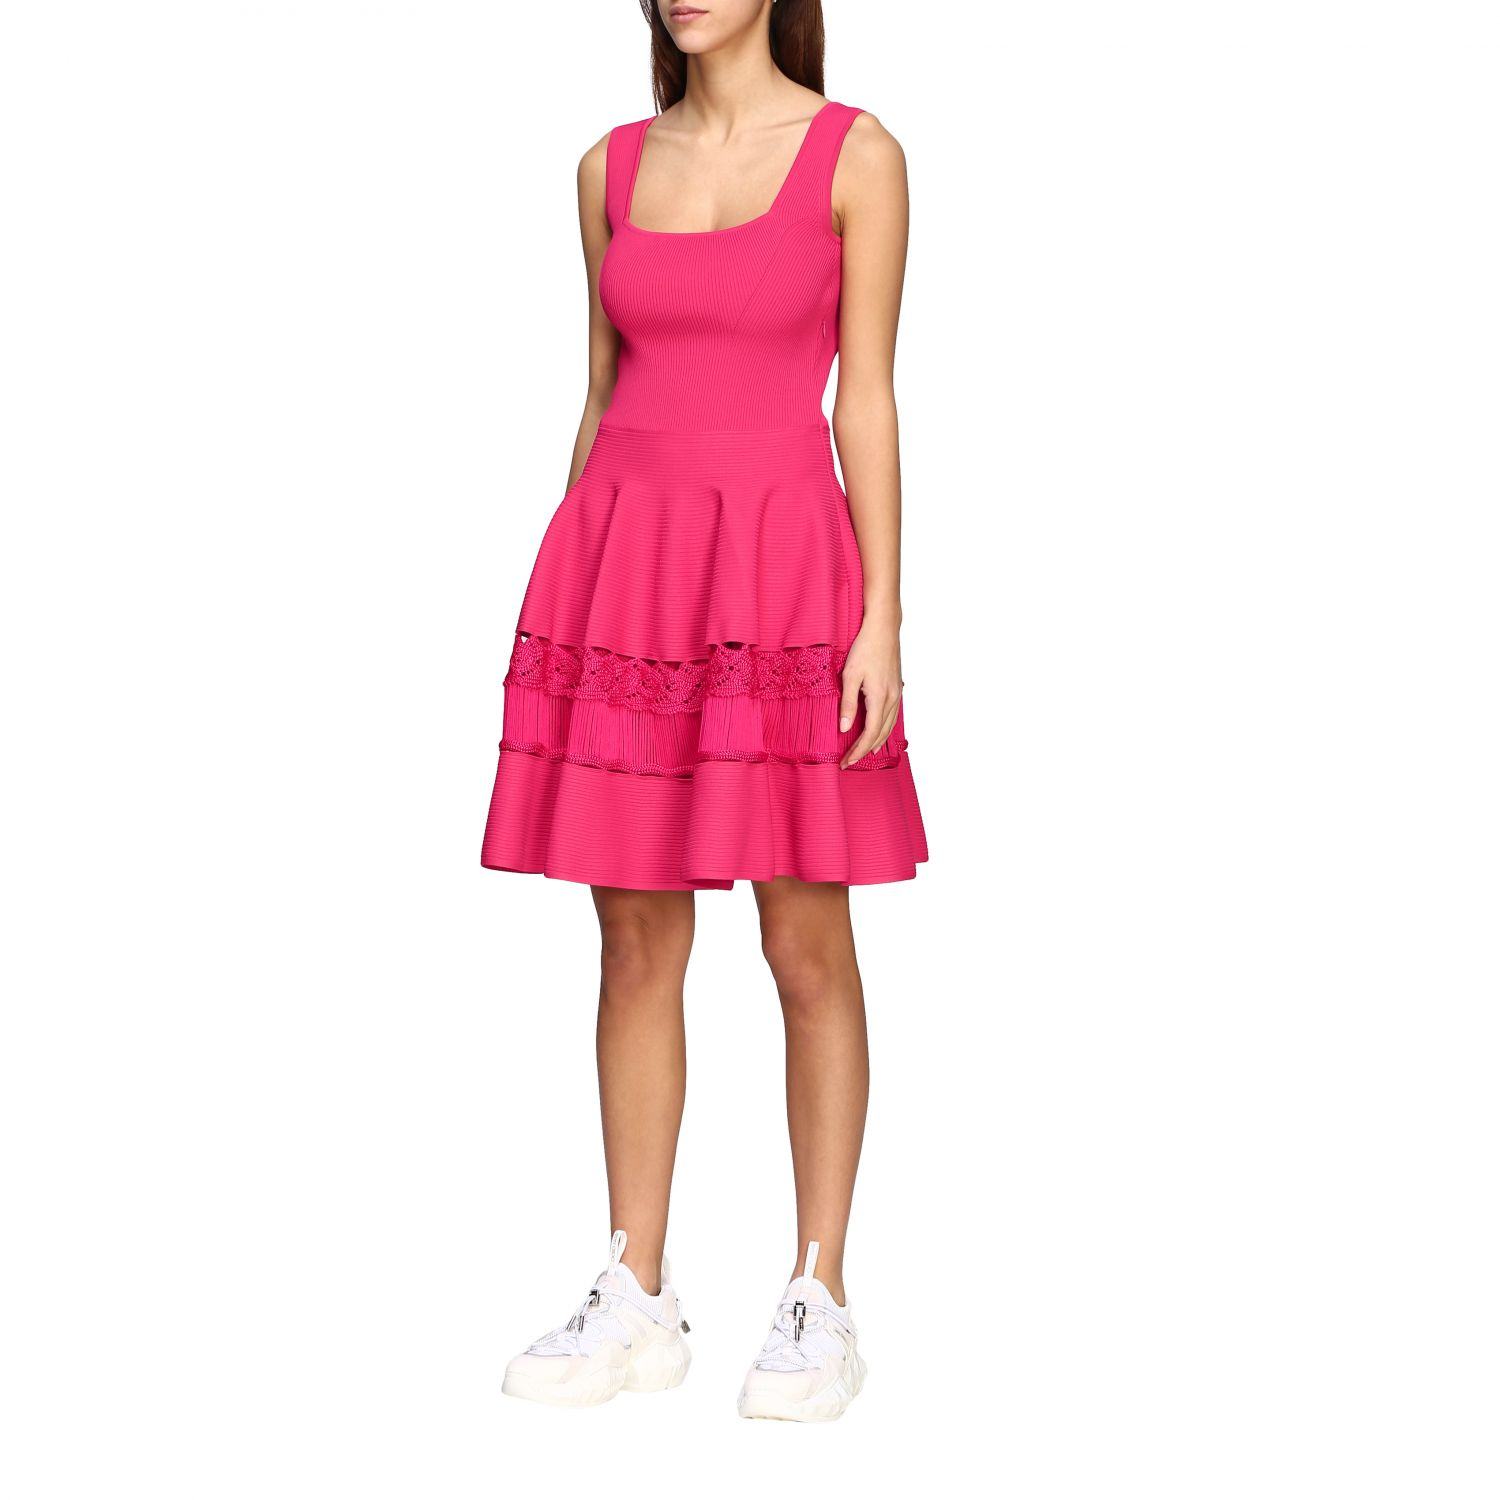 Dress Alexander Mcqueen: Dress women Alexander Mcqueen fuchsia 3